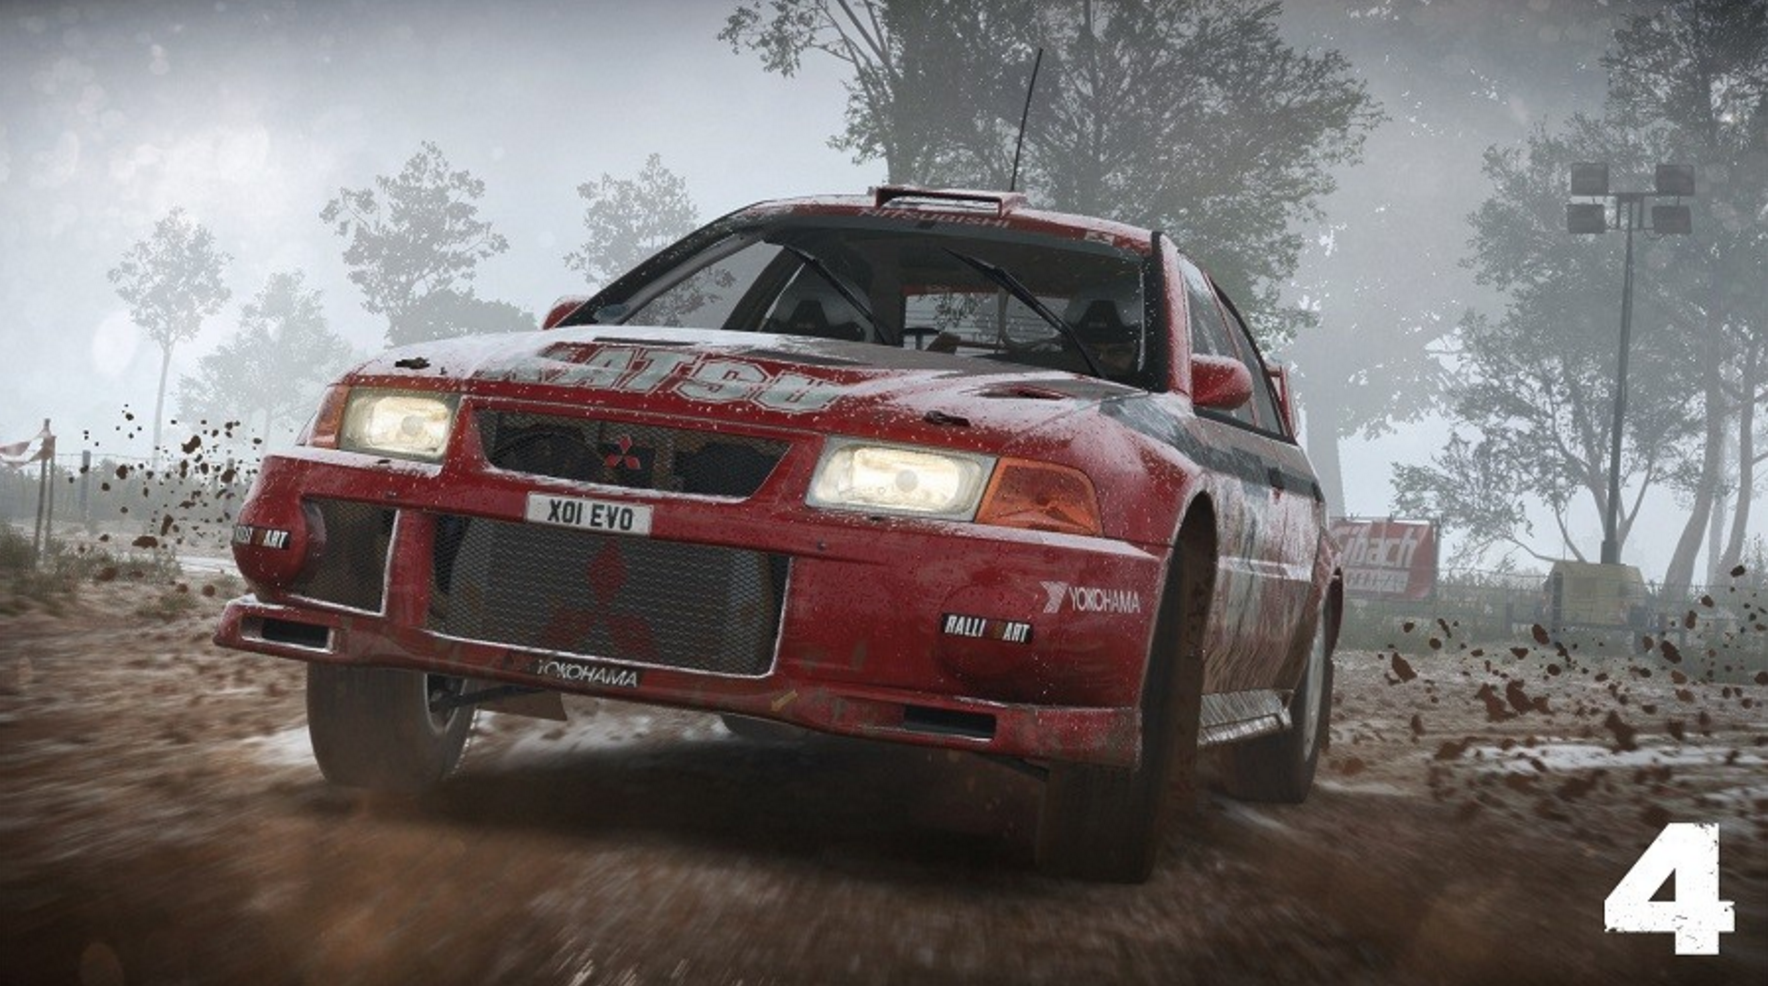 What is DiRT 4?